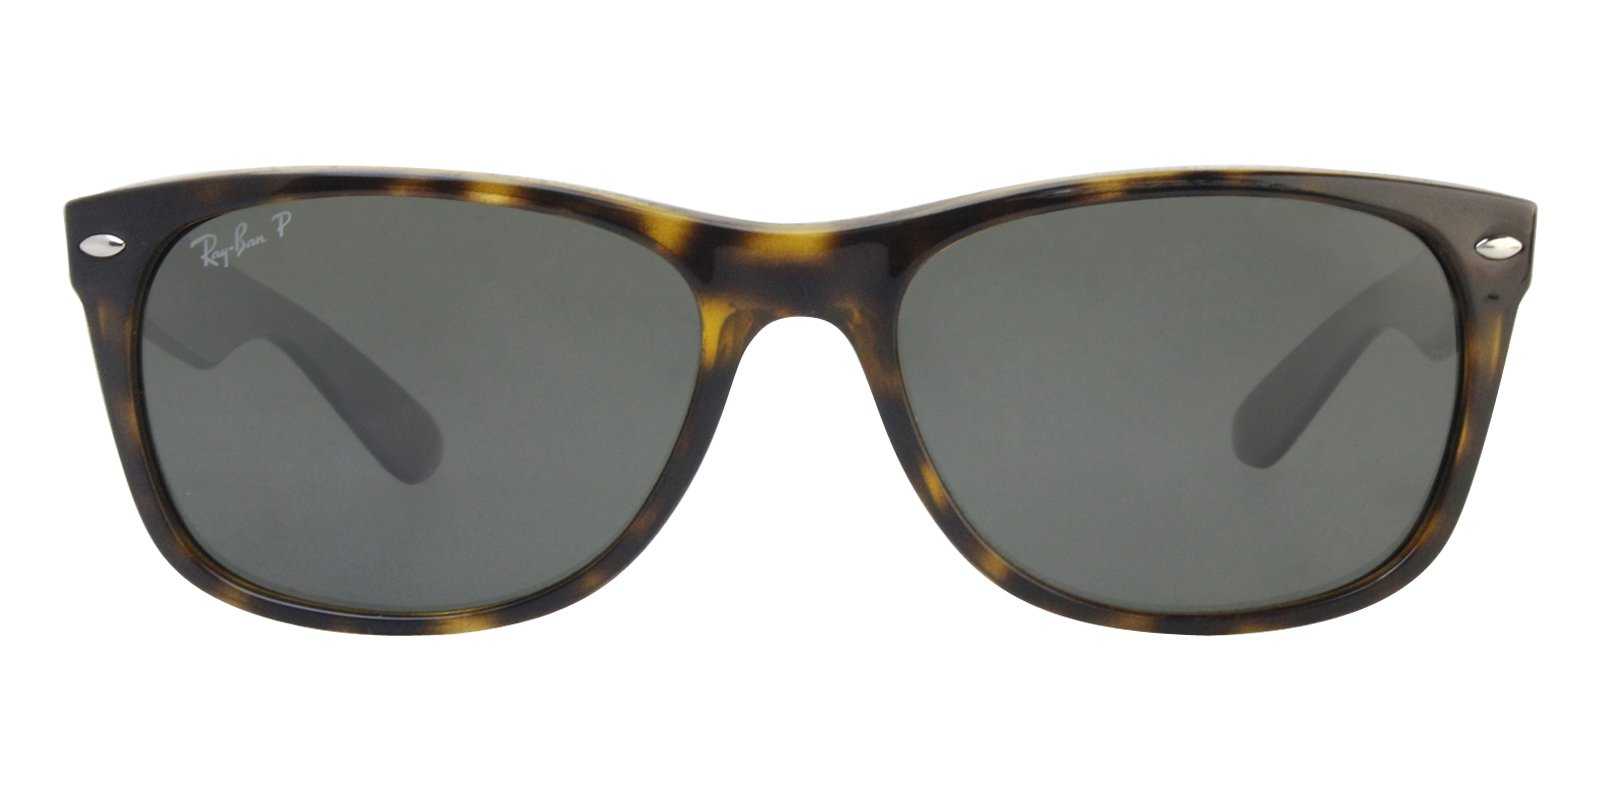 top design hot sale 100% authentic RAY BAN NEW WAYFARER POLARIZED OUTSIDERS RB 2132 90258 ...